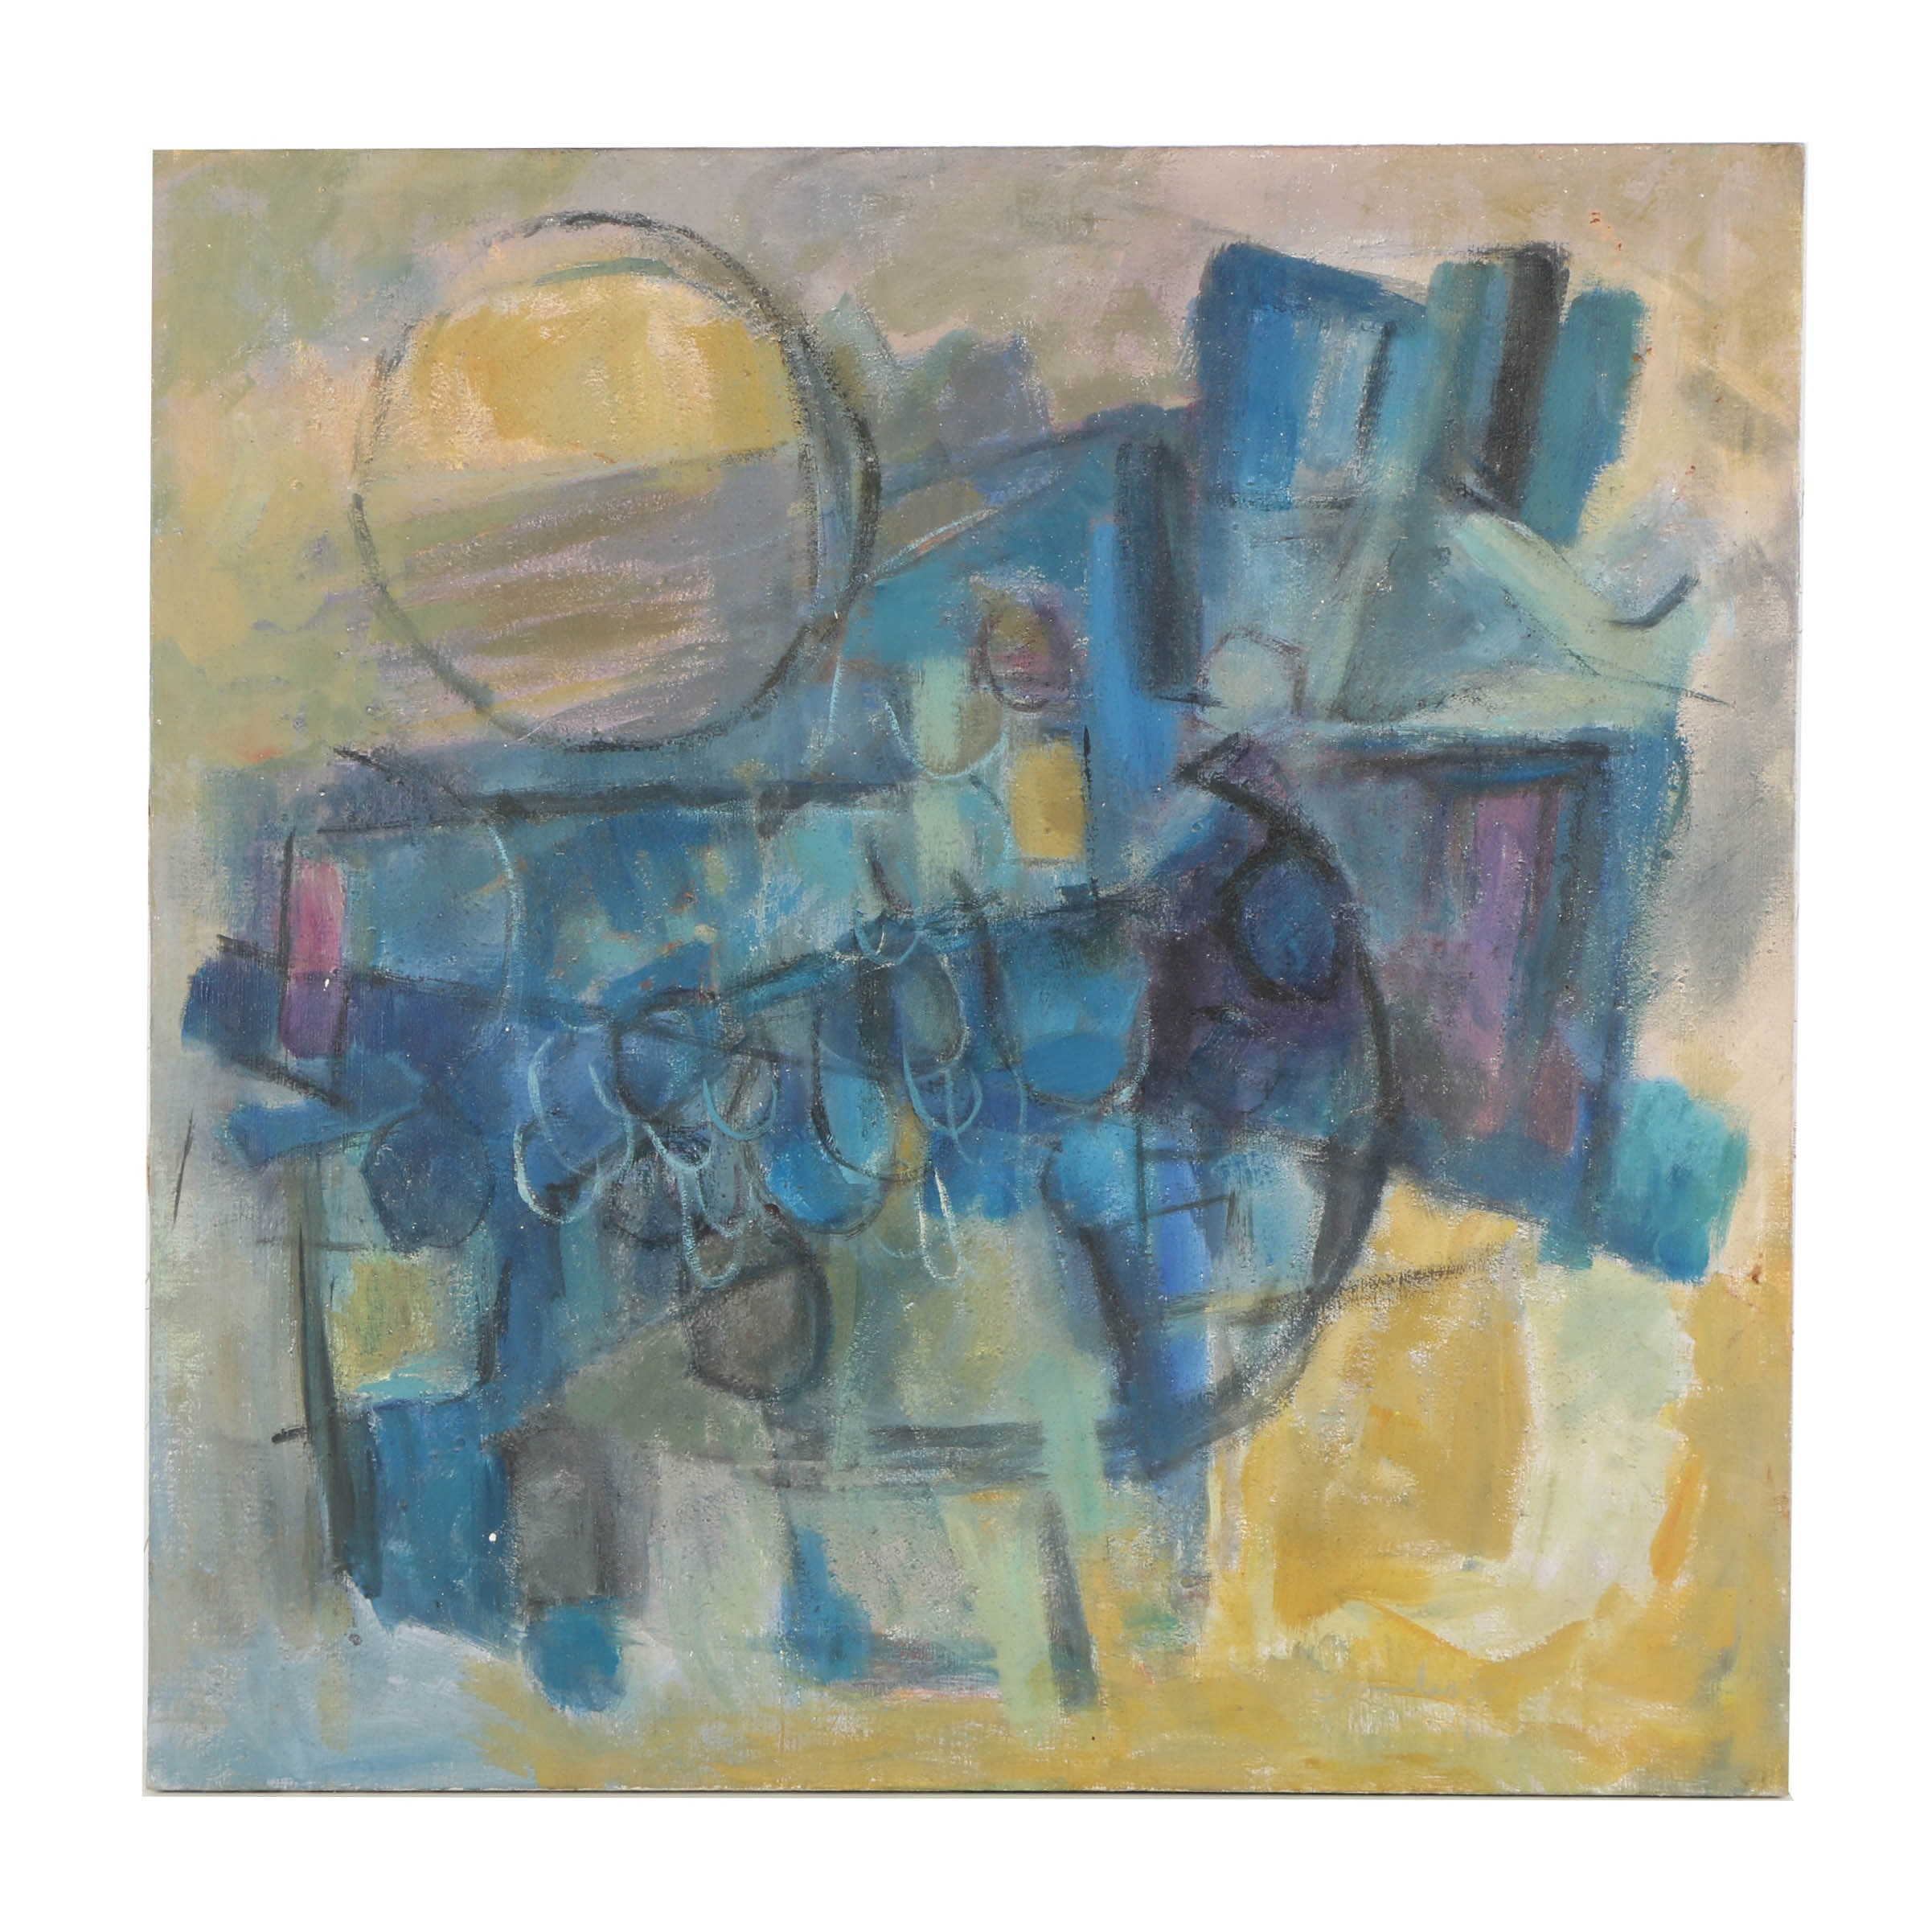 Oil Painting on Canvas Abstract Expressionist Style Composition